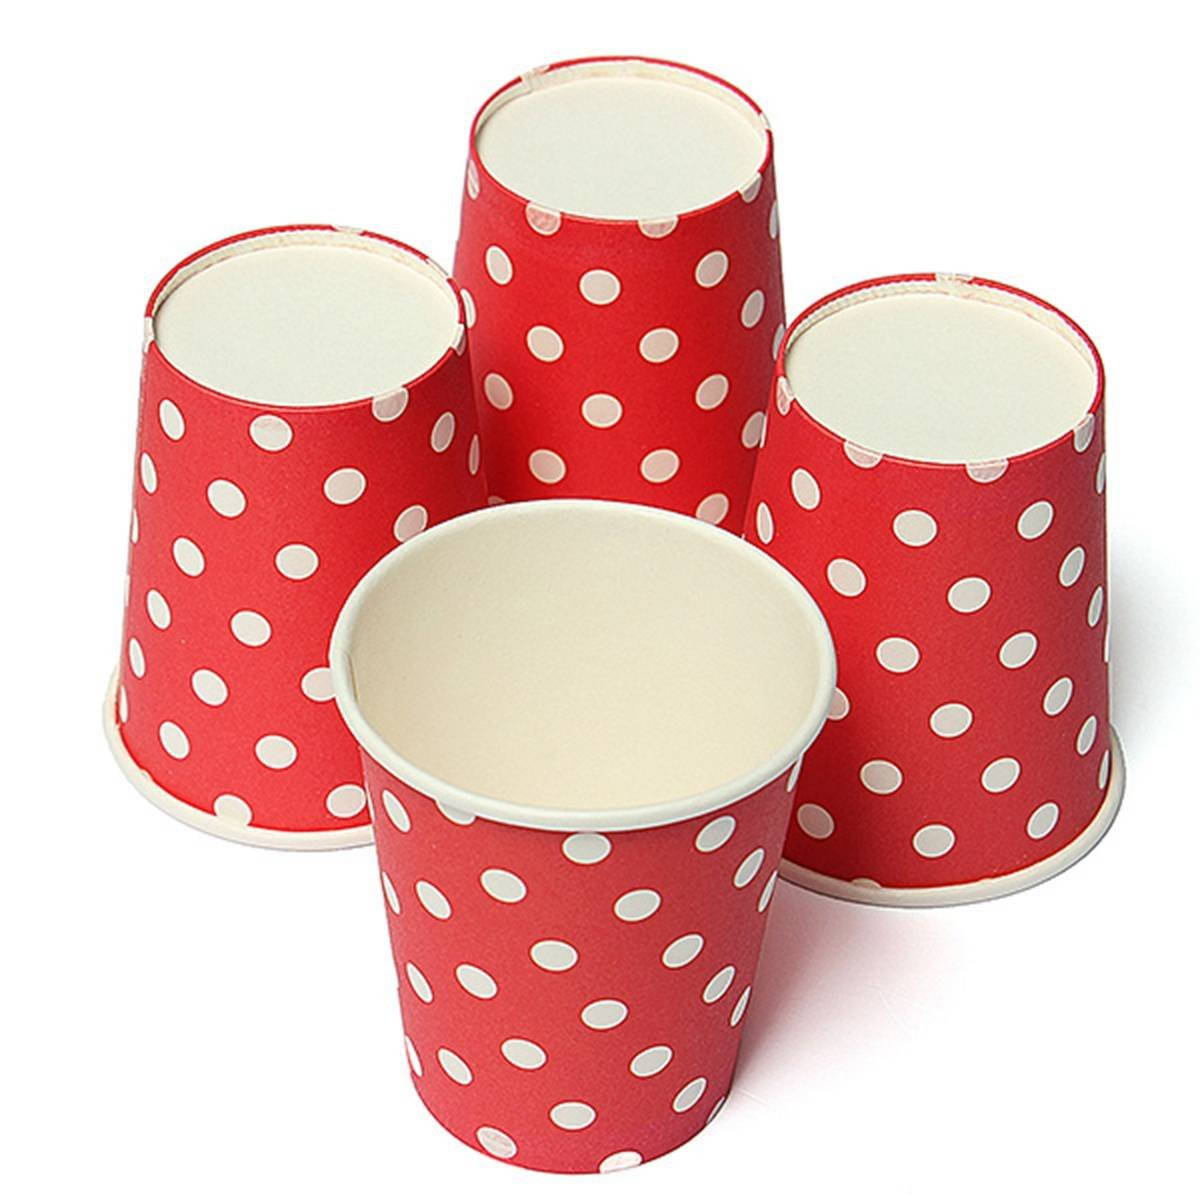 FLST 50pcs Polka Dot Paper Paper Cups Case Disposable Tableware Wedding Birthday Decorations Red